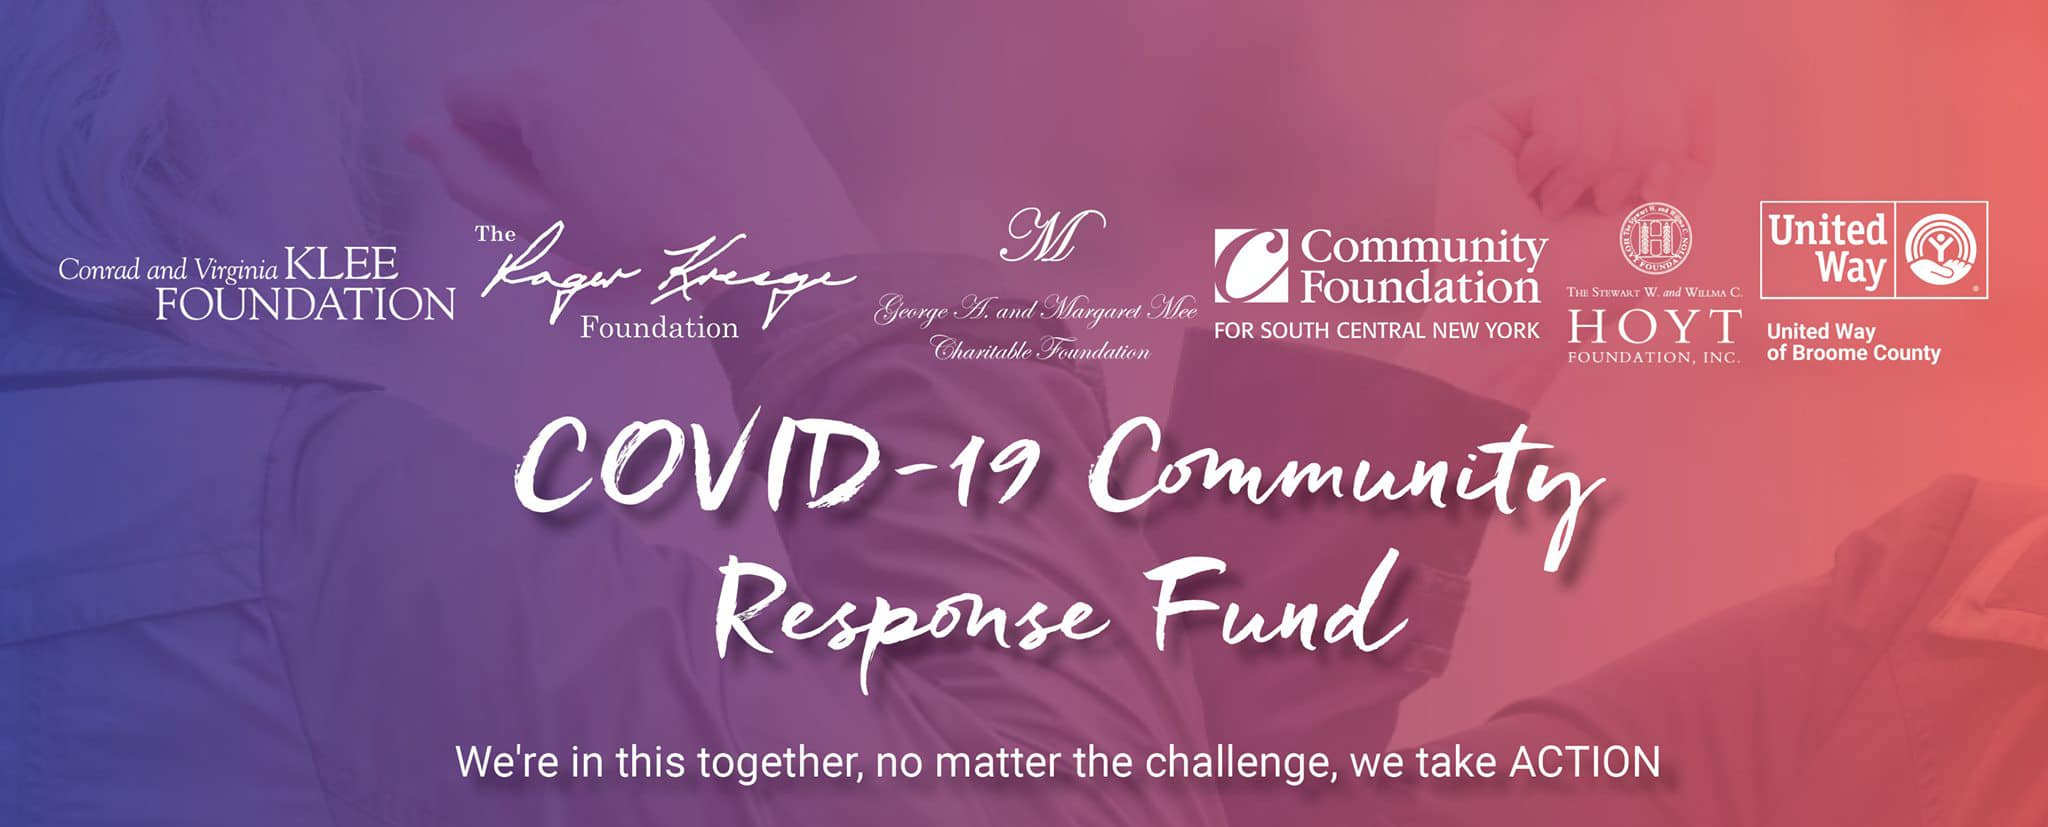 The COVID-19 Community Response Fund Alliance, including United Way of Broome County, the Community Foundation for South Central NY, the Conrad & Virginia Klee Foundation, the Kresge Foundation, the Dr. G. Clifford and Florence B. Decker Foundation, the Mee Foundation and the Hoyt Foundation.